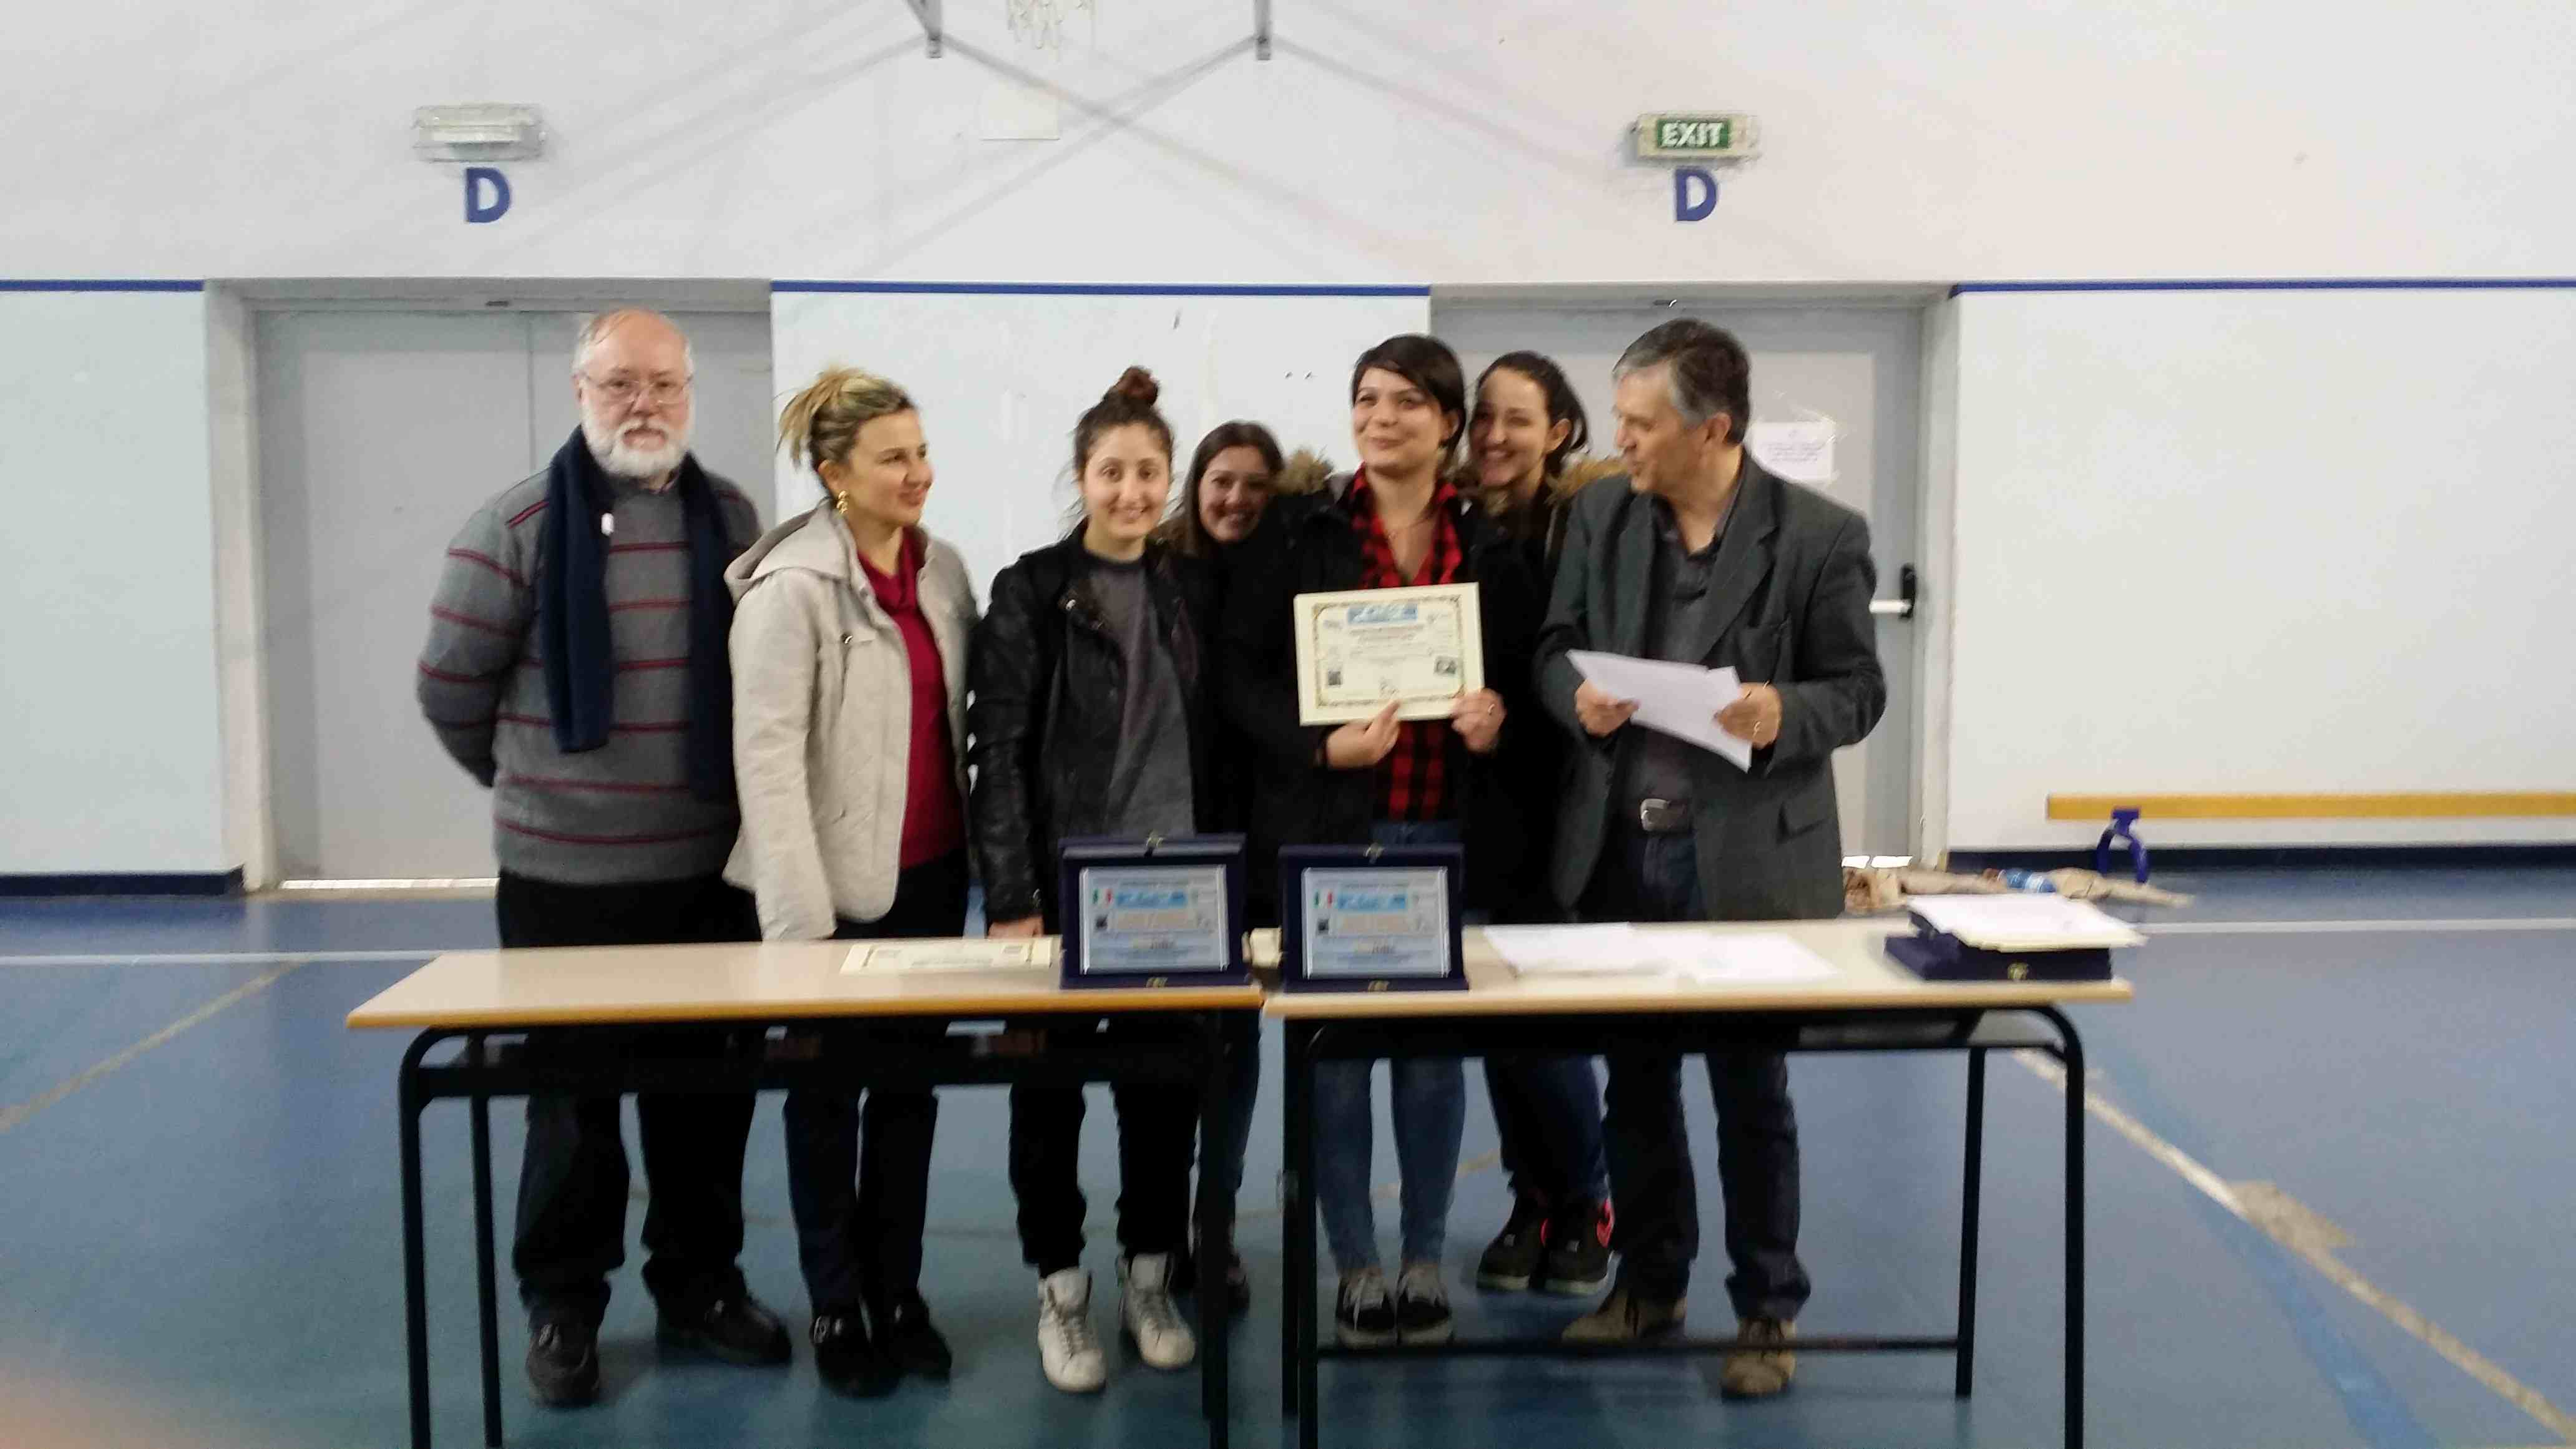 2° Classificata Sec. Ii grado Jun. Femminili Liceo Scientifico S. PIZZI CAPUA